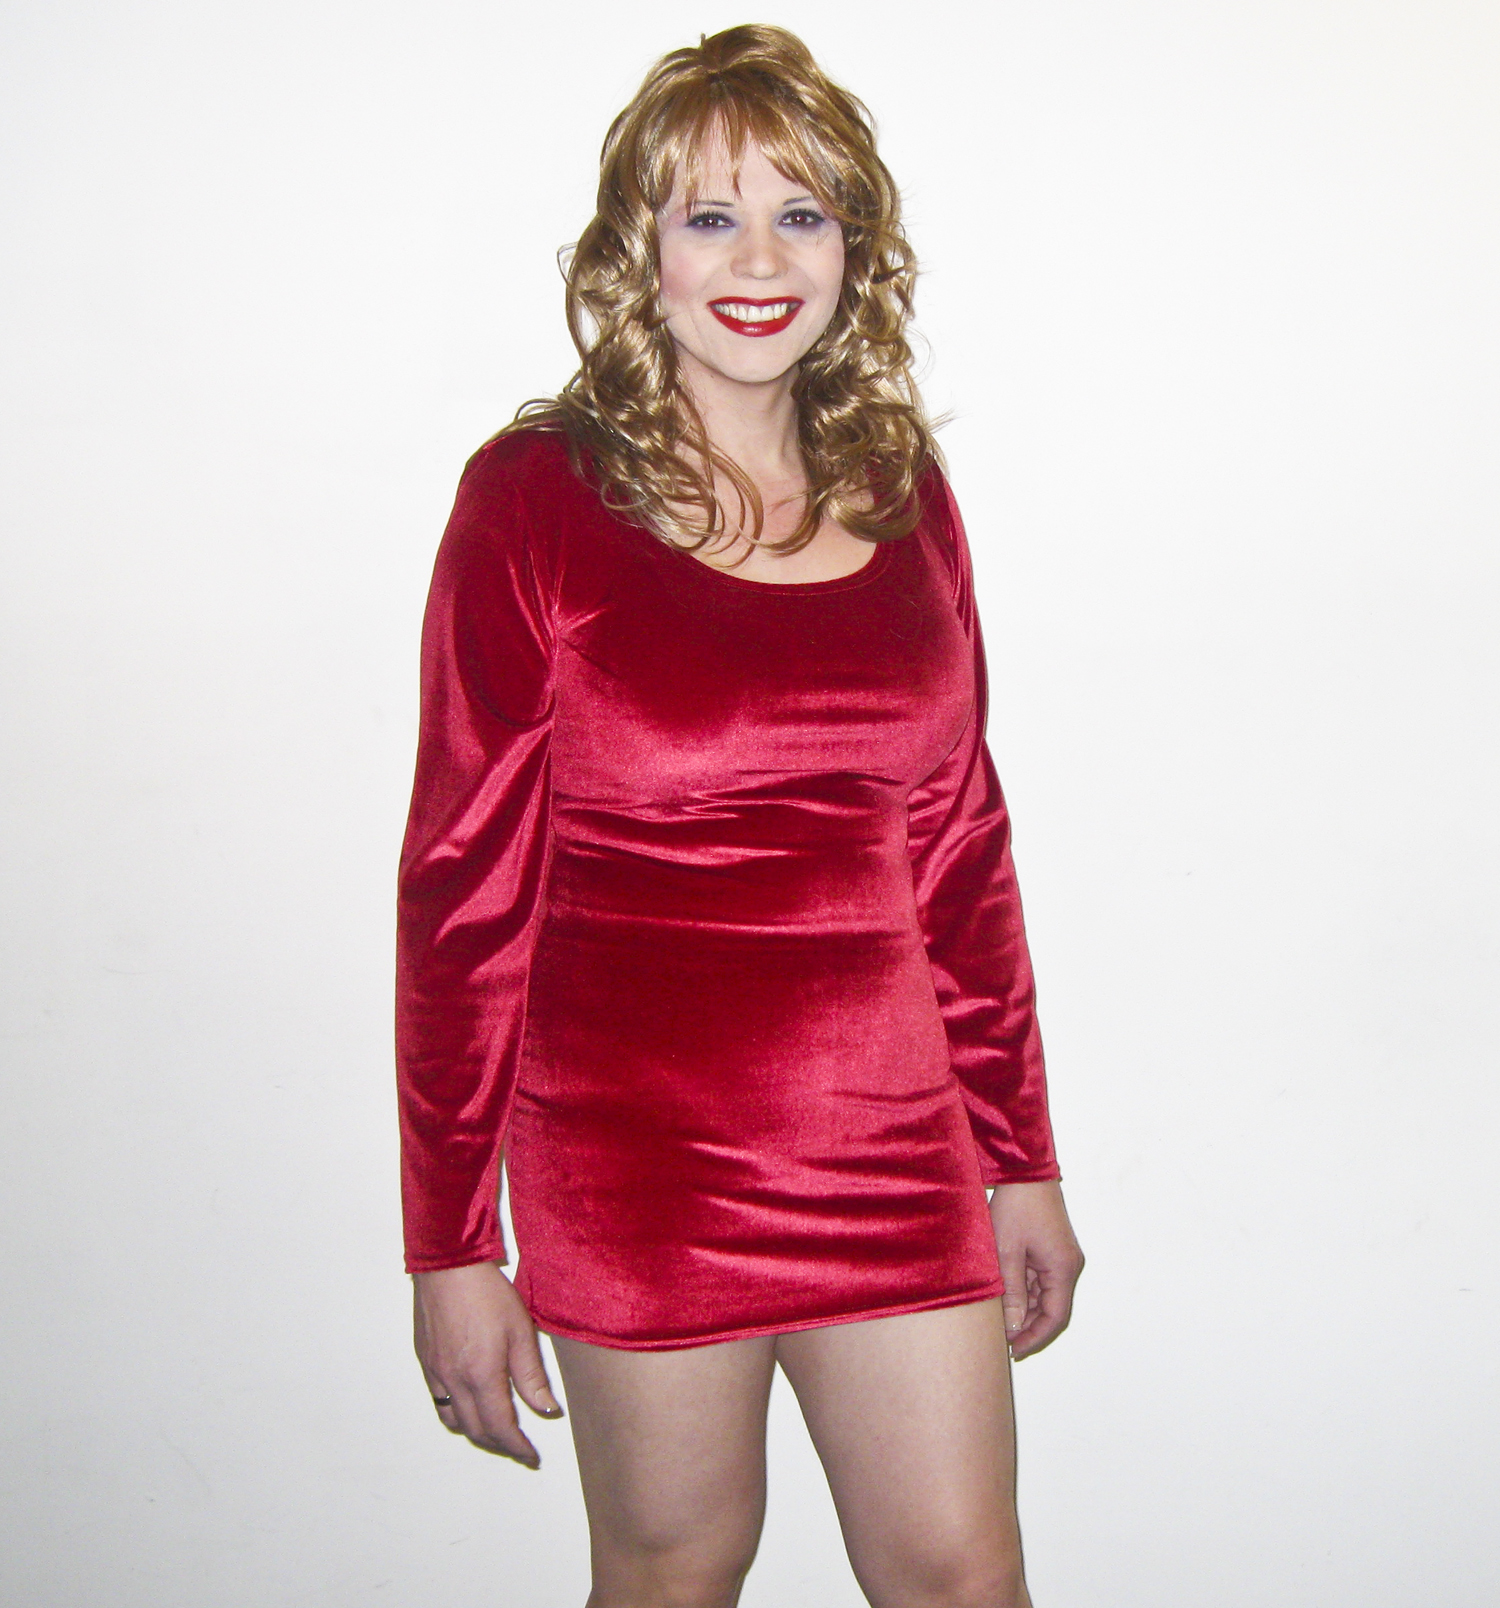 Black or Red Velvet Dress u2013 Shop Wildside